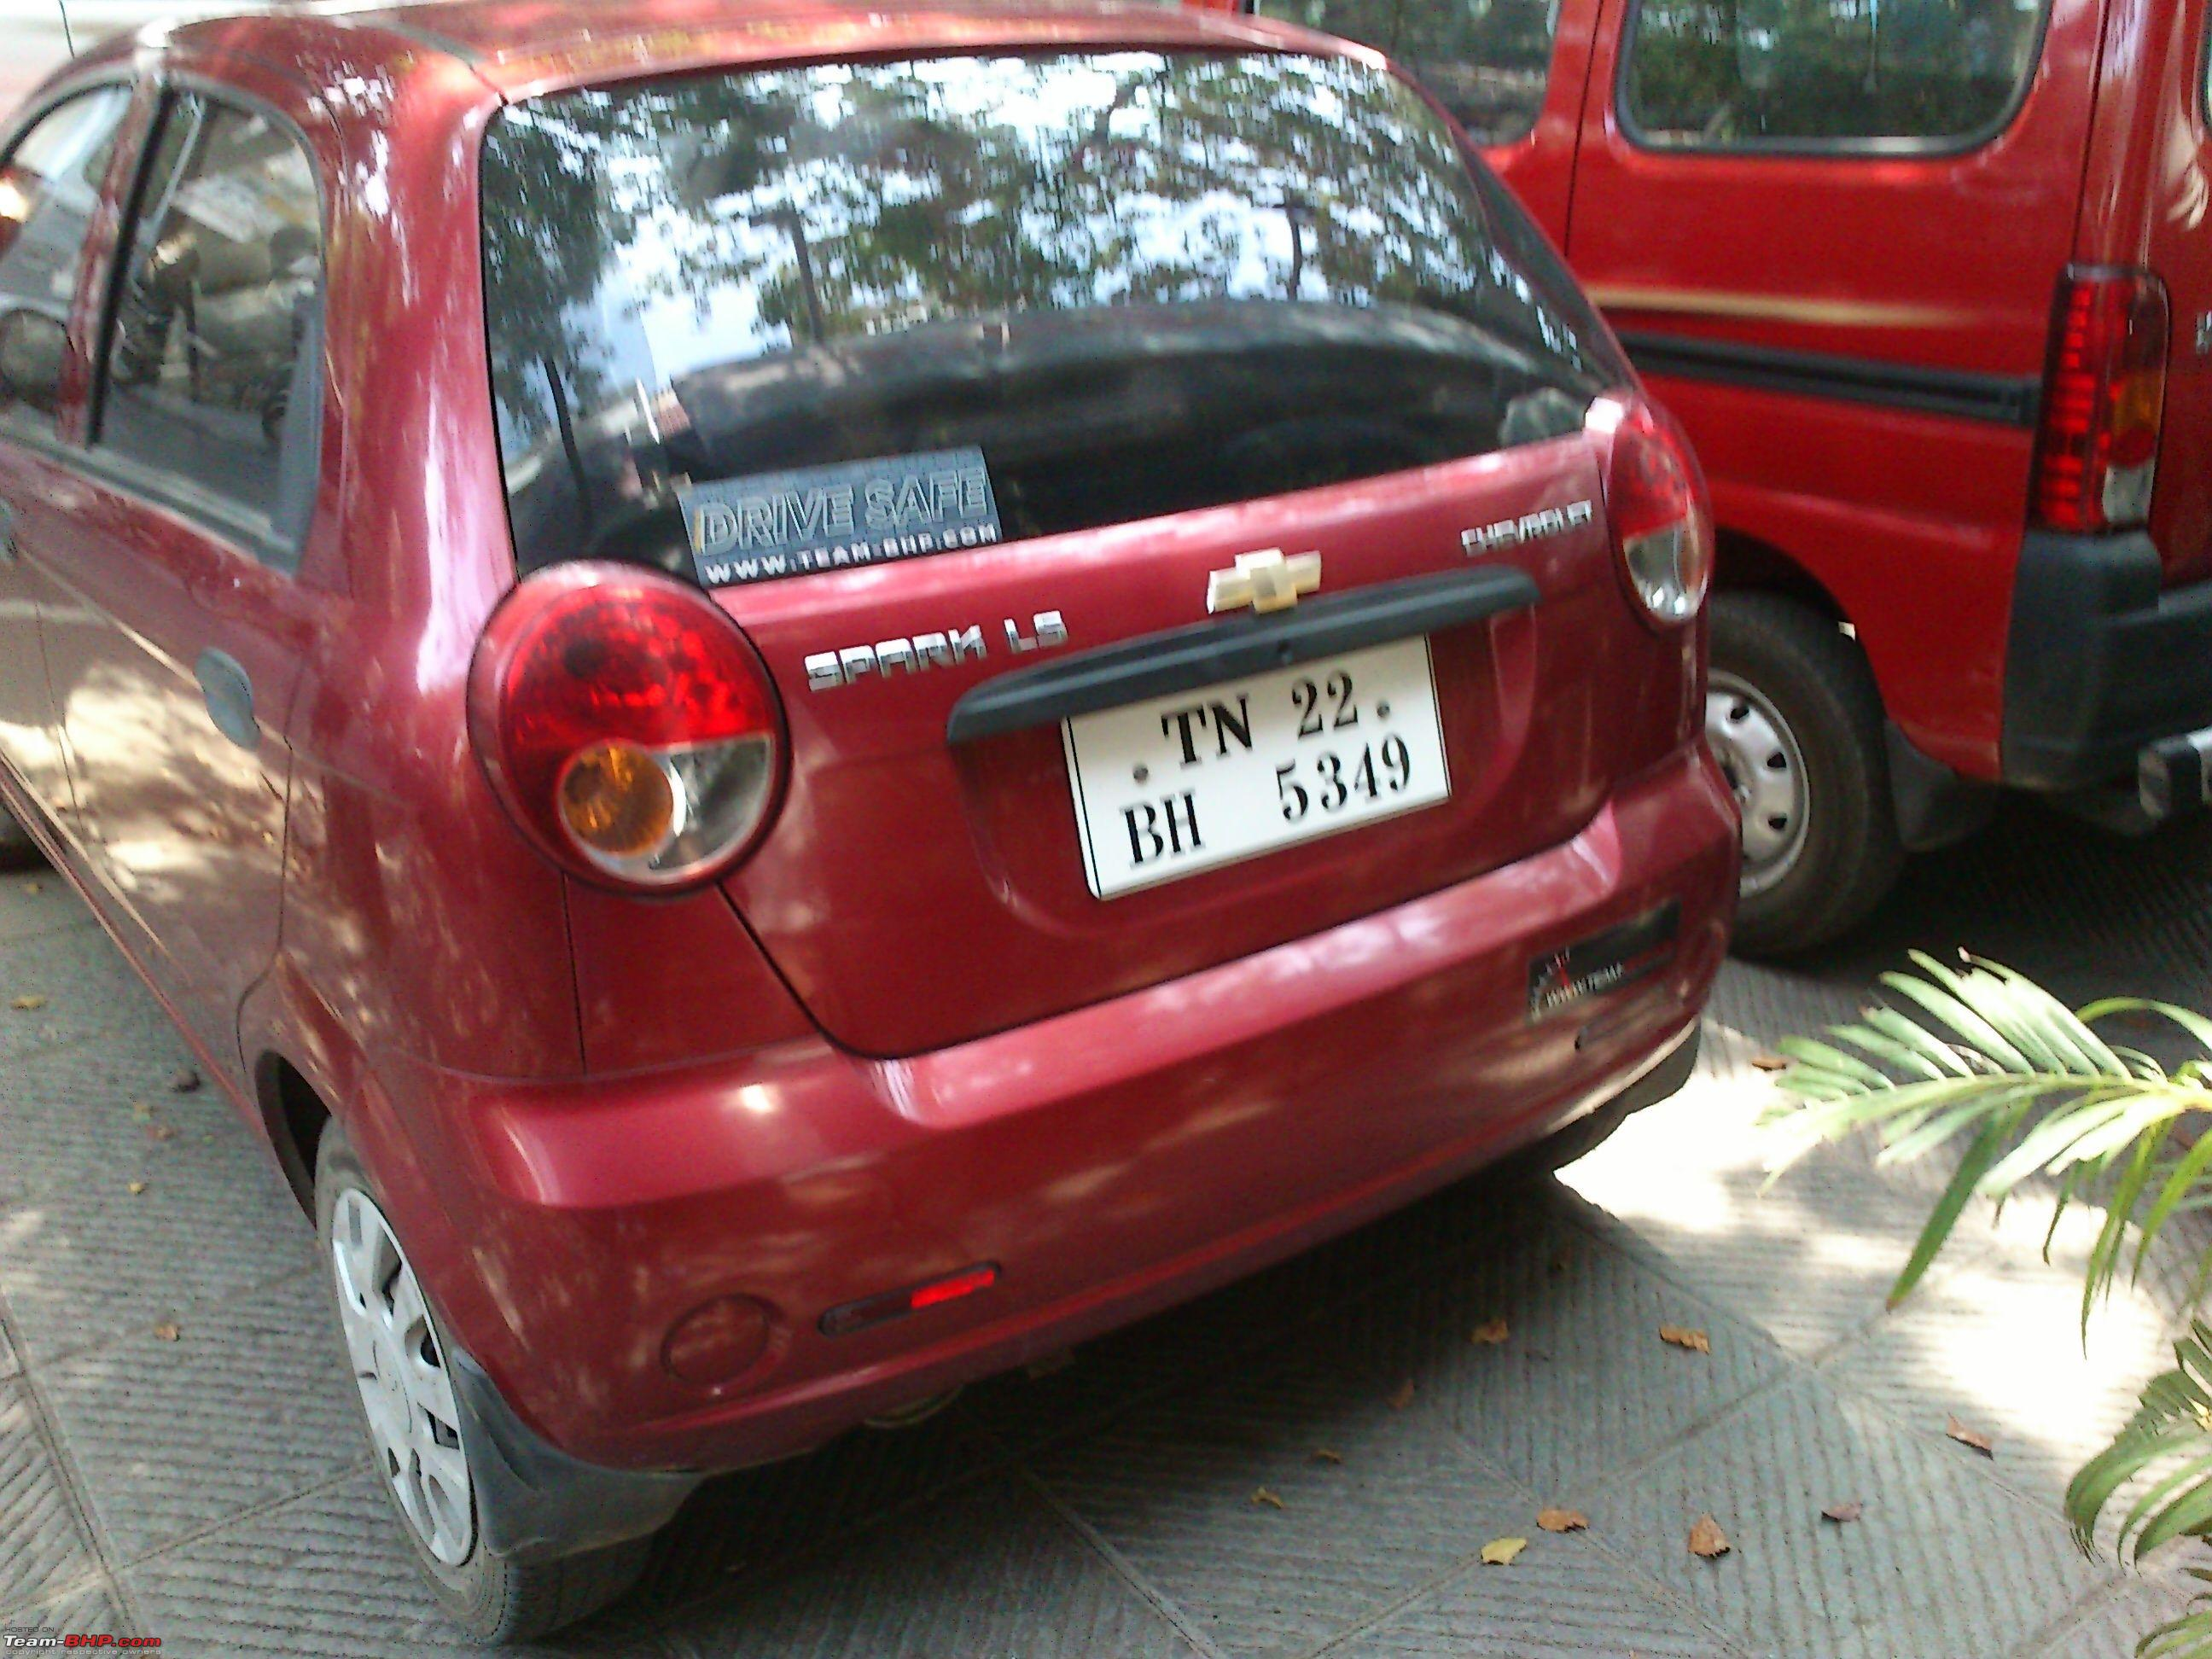 Car red chevrolet spark tn 22 bh 5349 with drive safe and t bhp sticker on the hatch and bumper